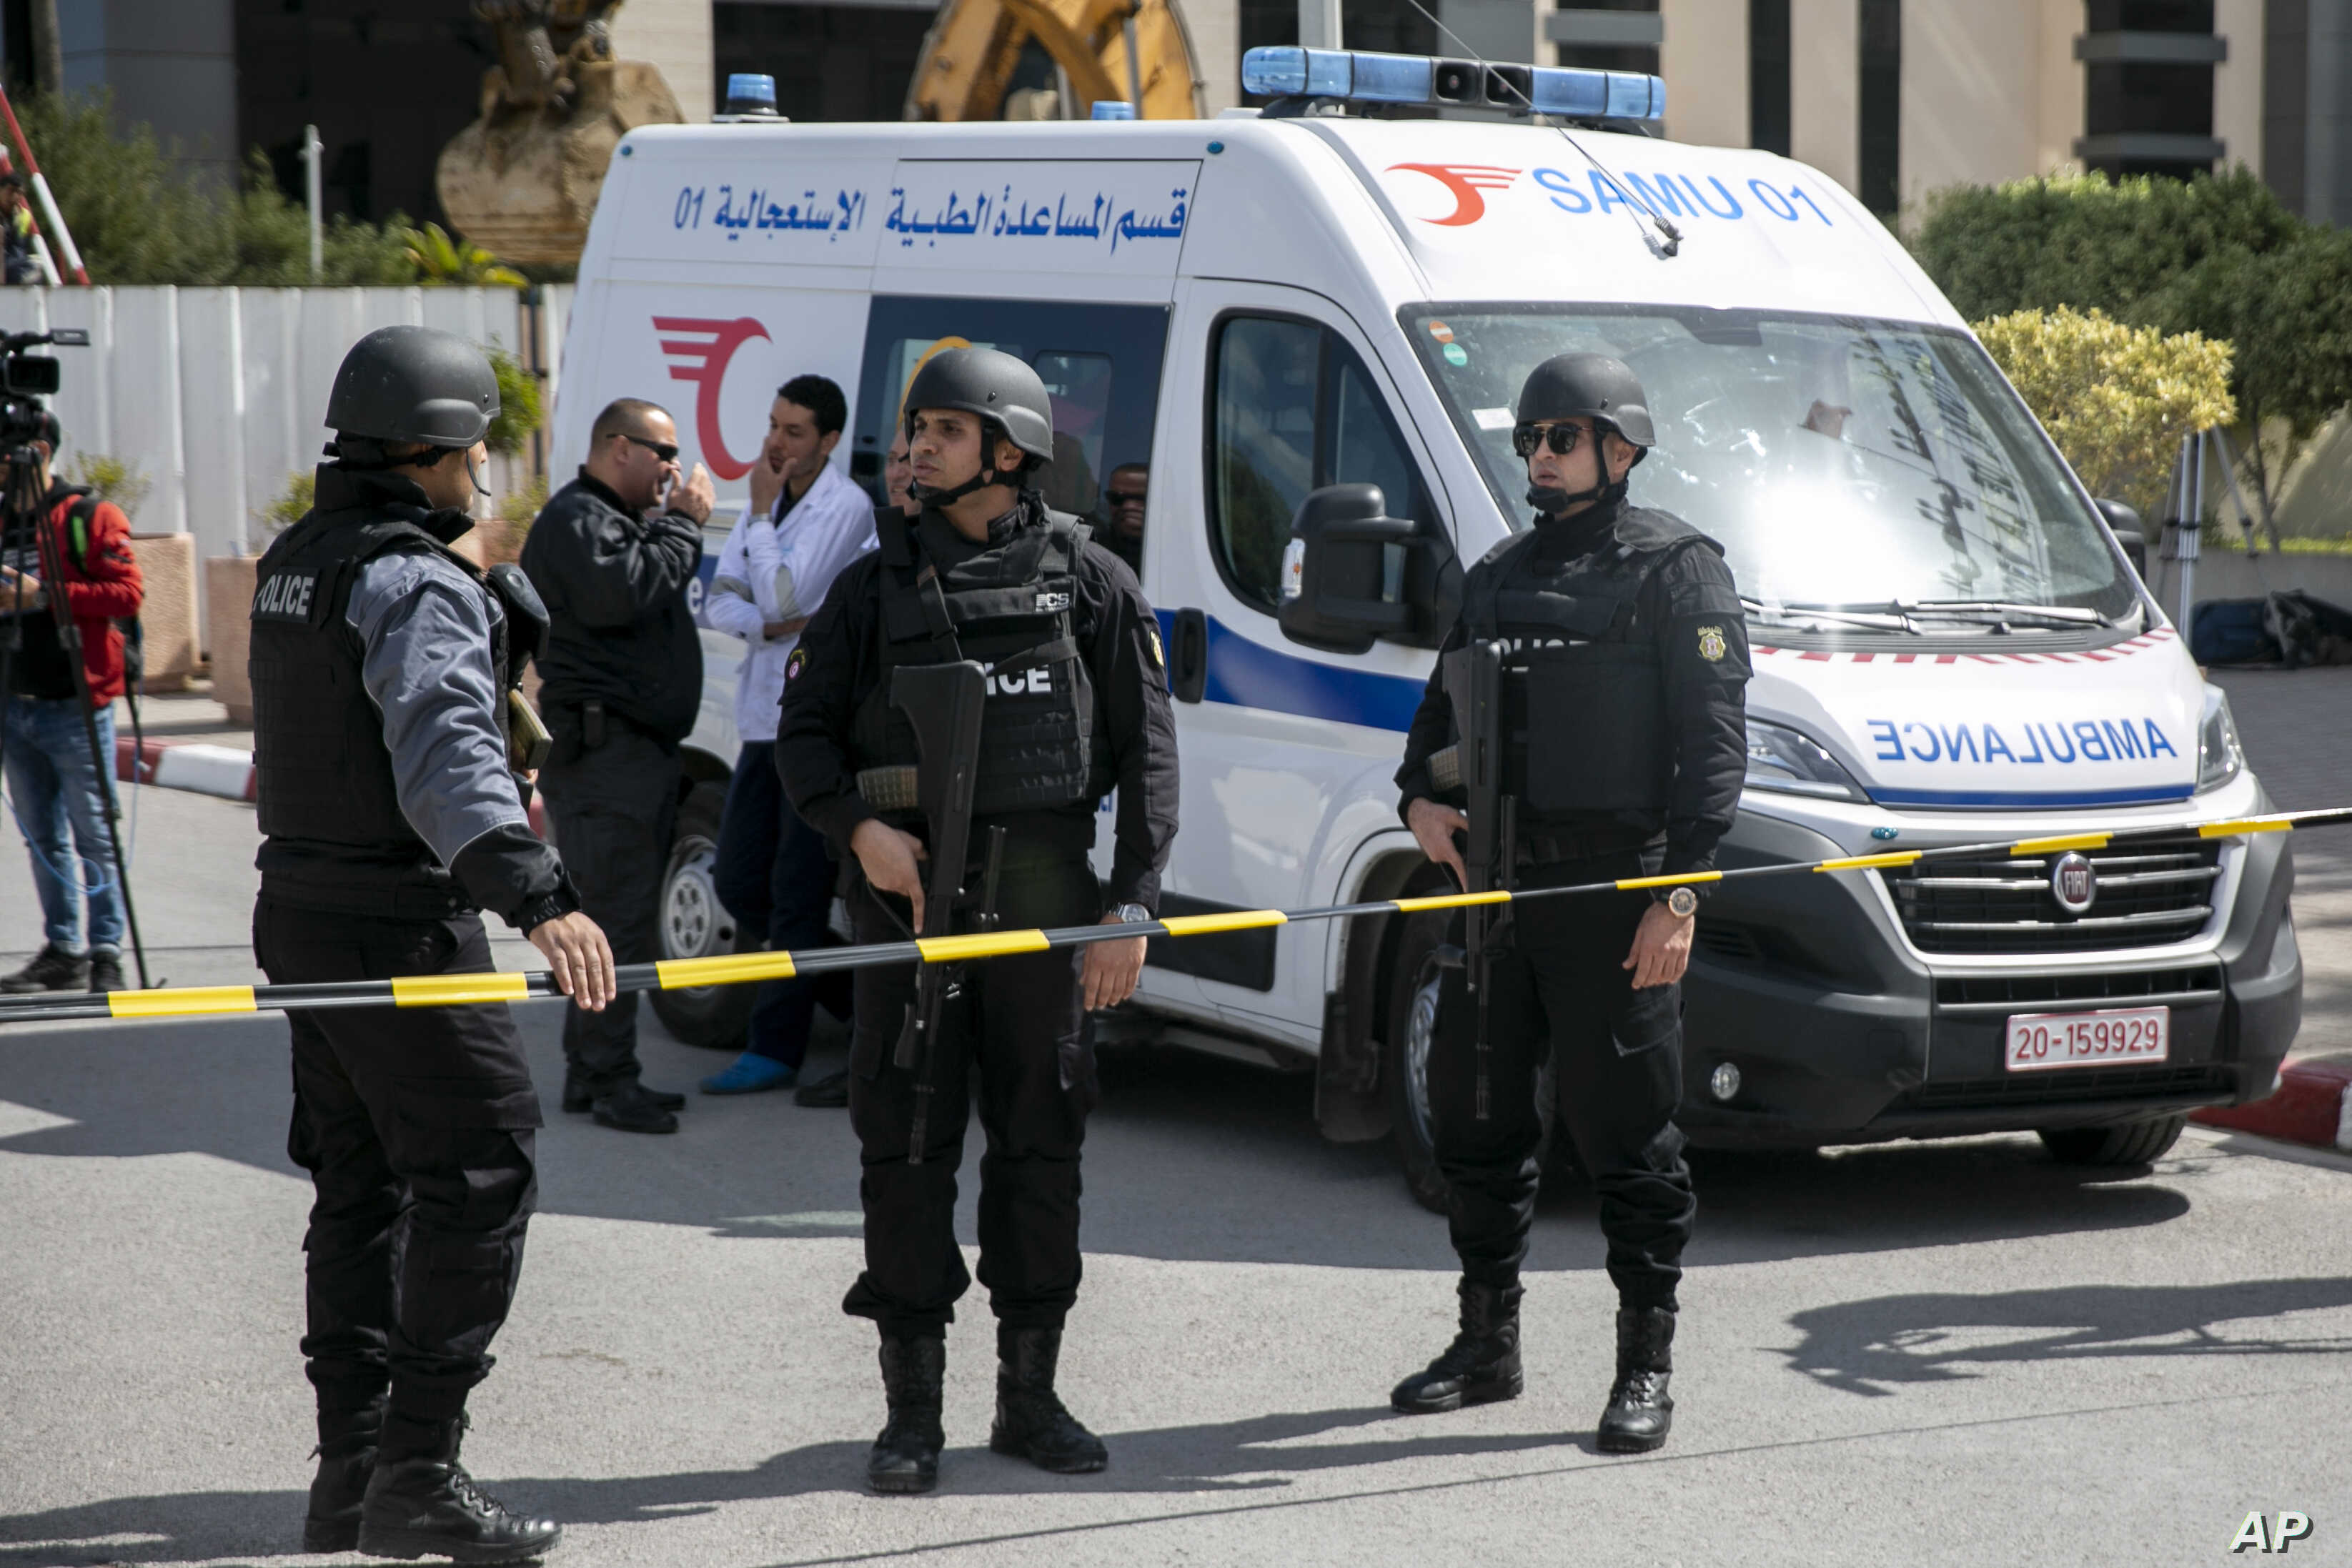 Explosion near US Embassy in Tunis prompts emergency response